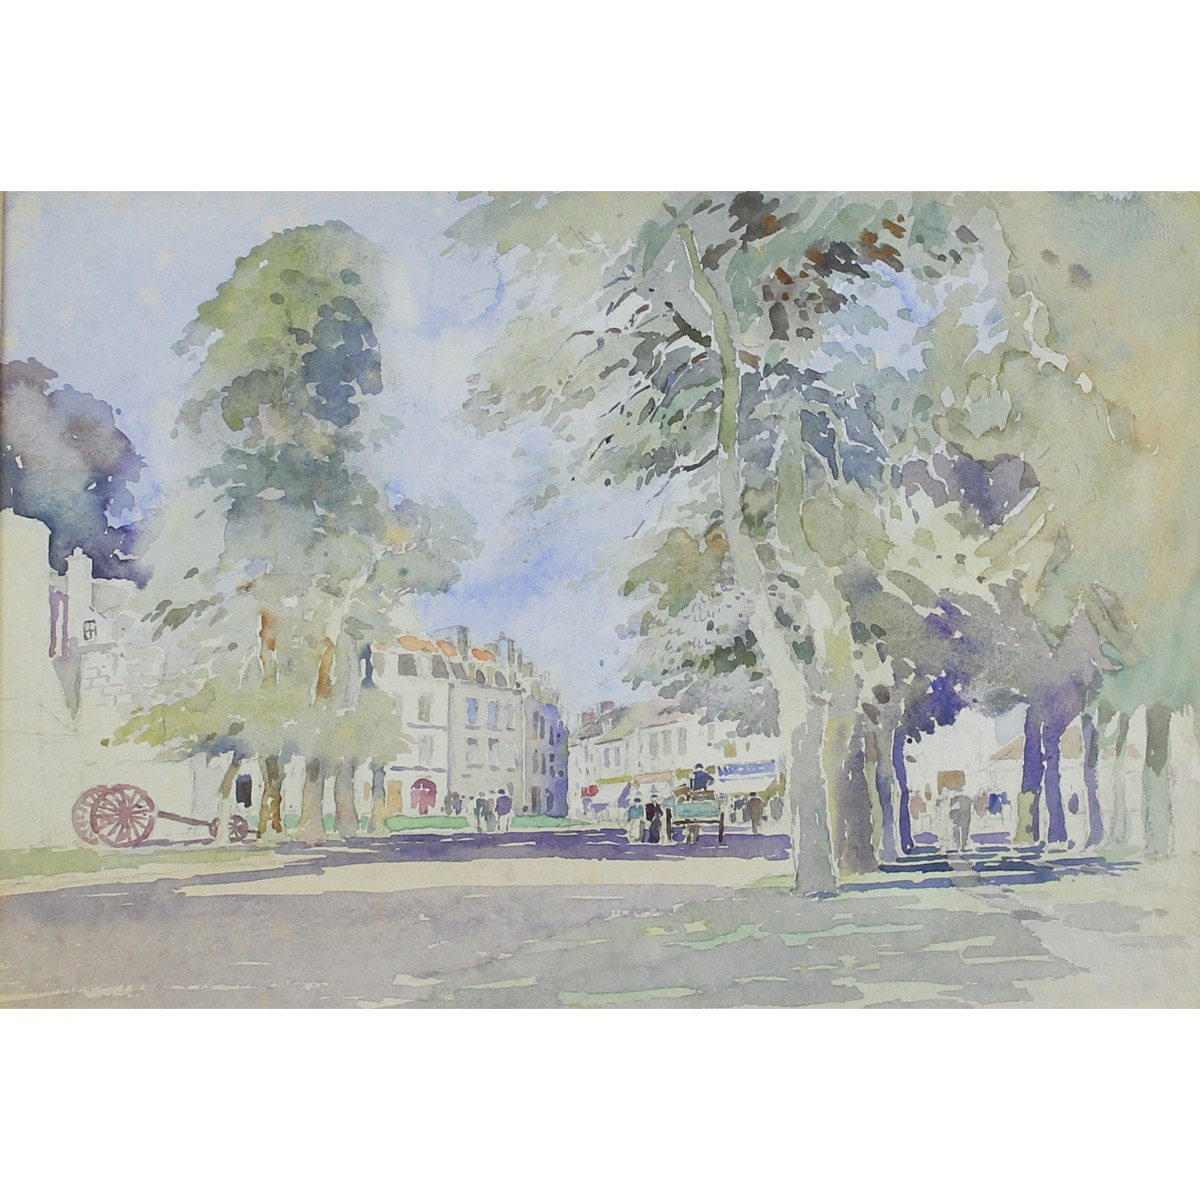 Lot 10 - Rose, David 1936-2006 British AR Canal Scene in Northern France & A French Town (Two items)